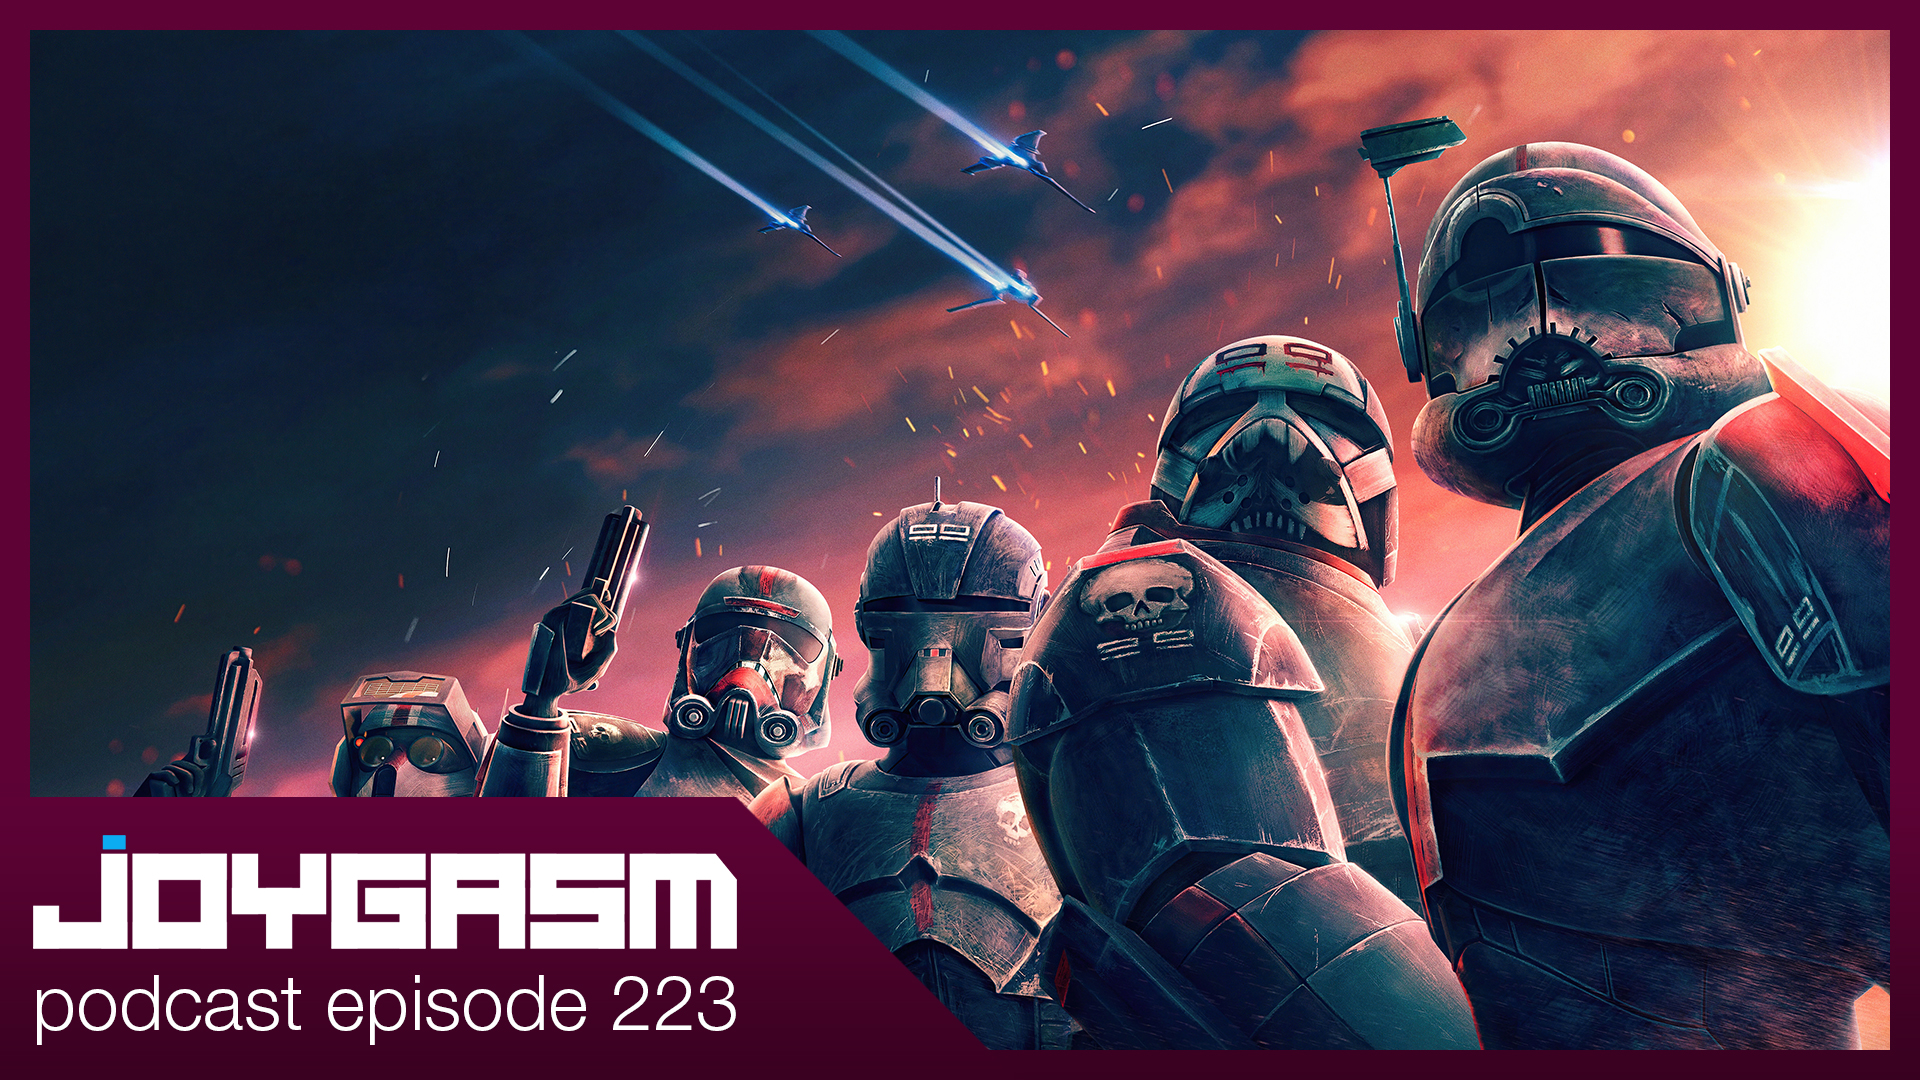 Ep. 223: Star Wars The Bad Batch Impressions, Creativity.Inc Book Impressions, May The Fourth Findings, & More